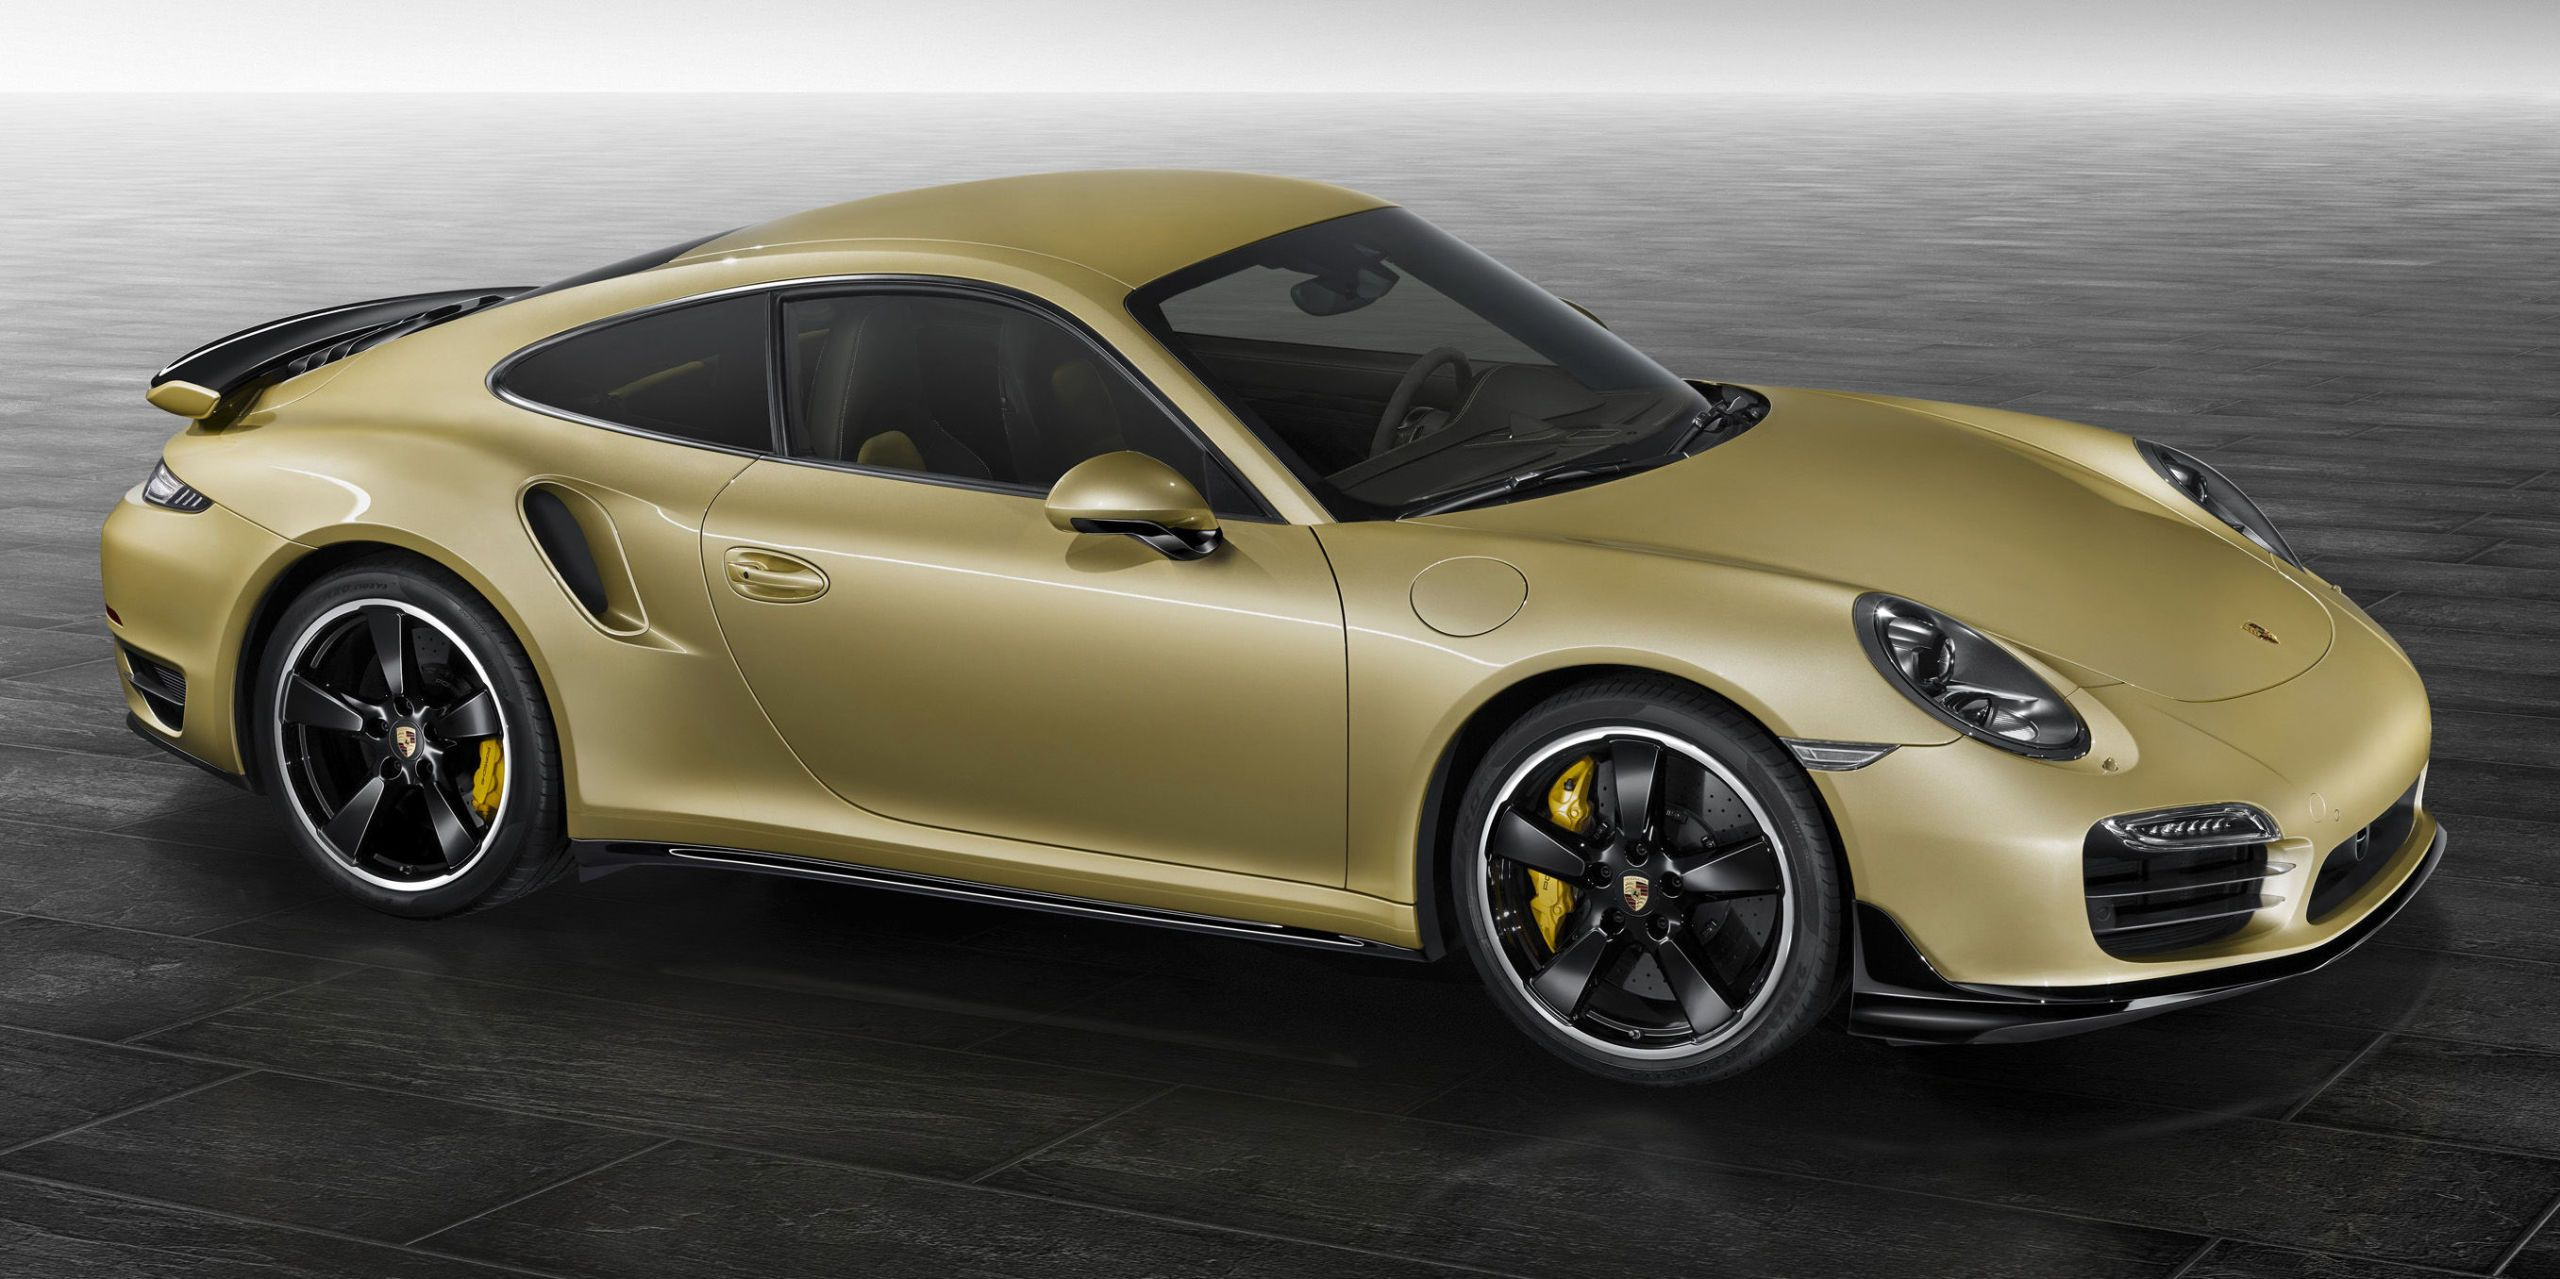 Porsche 911 Turbo, Turbo S get new Aerokit package